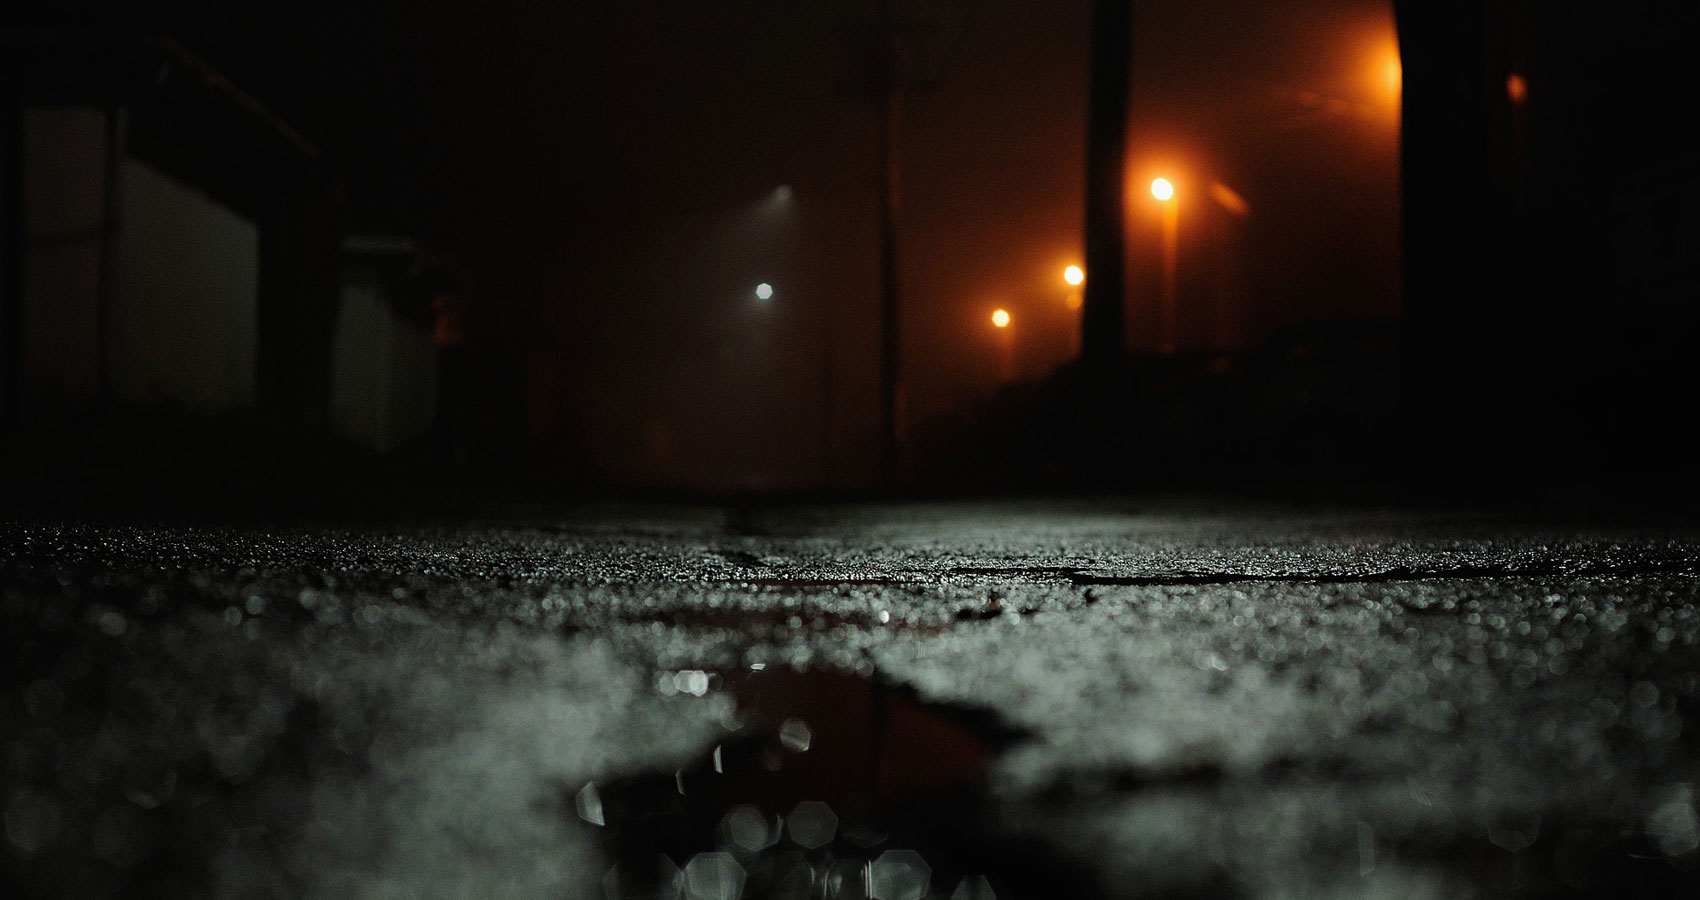 Home, short story written by Sunil Sharma at Spillwords.com